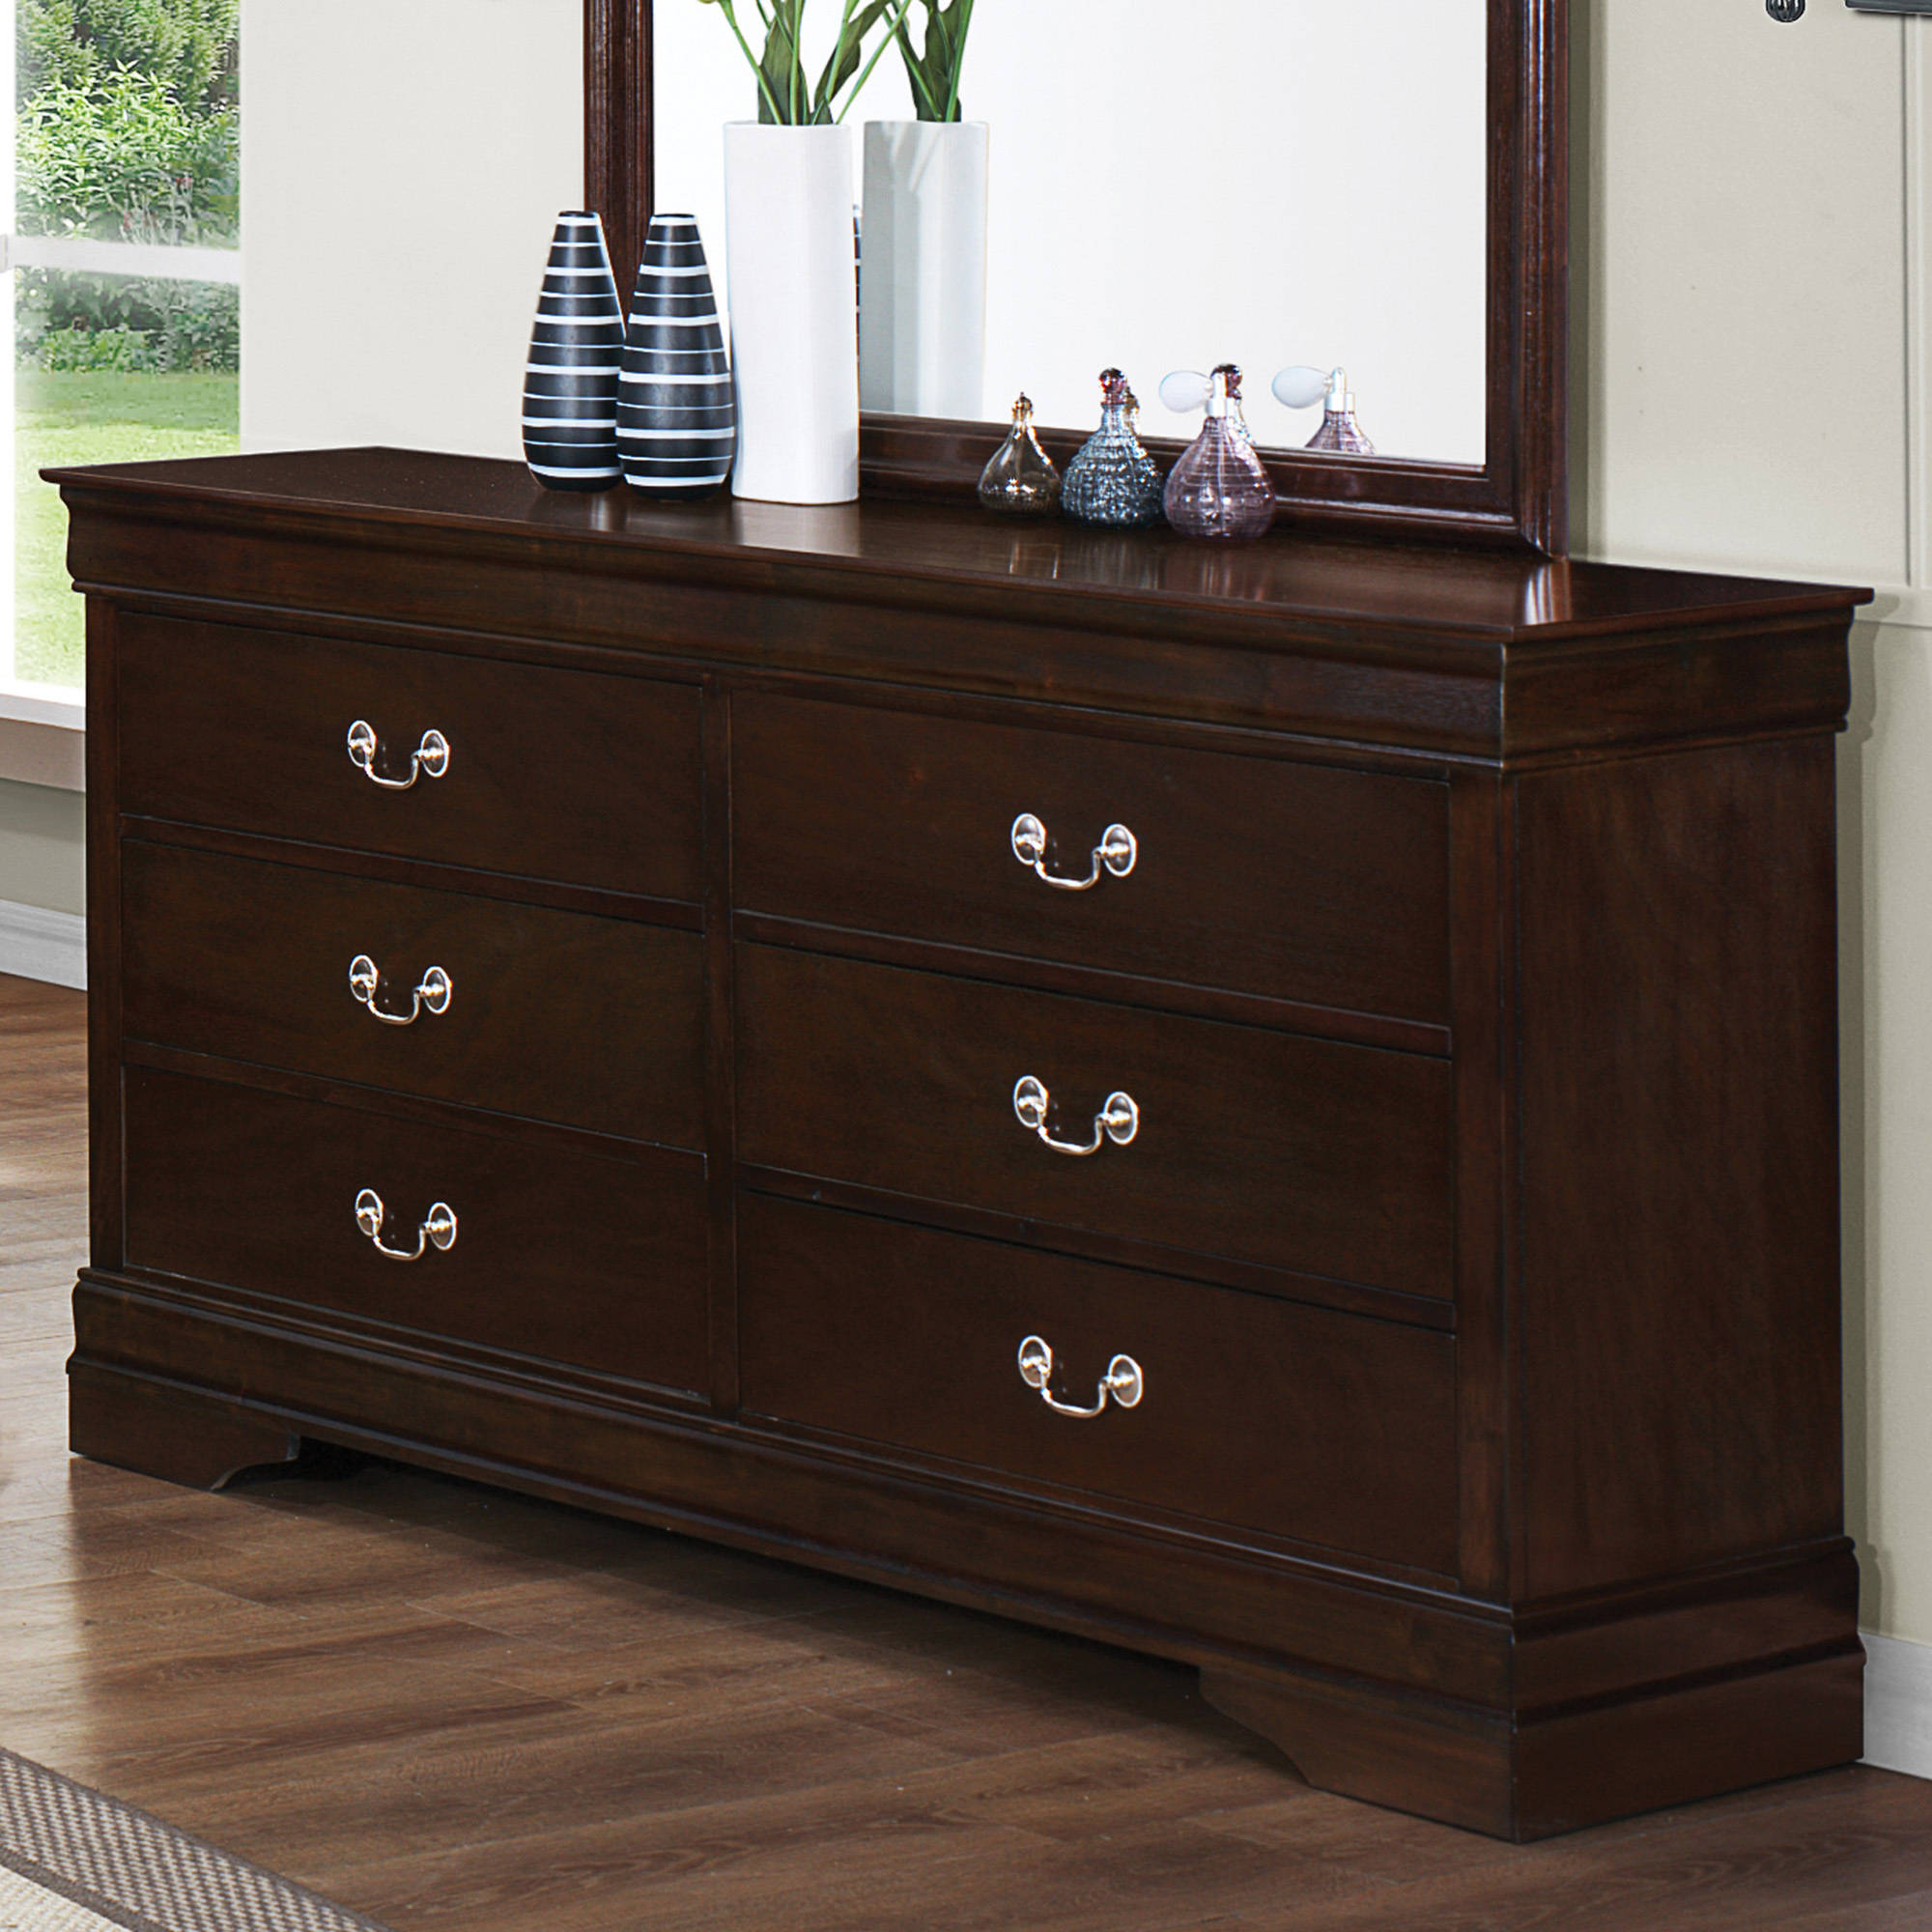 Coaster Company Louis Philippe Collection Dresser, Cappuccino